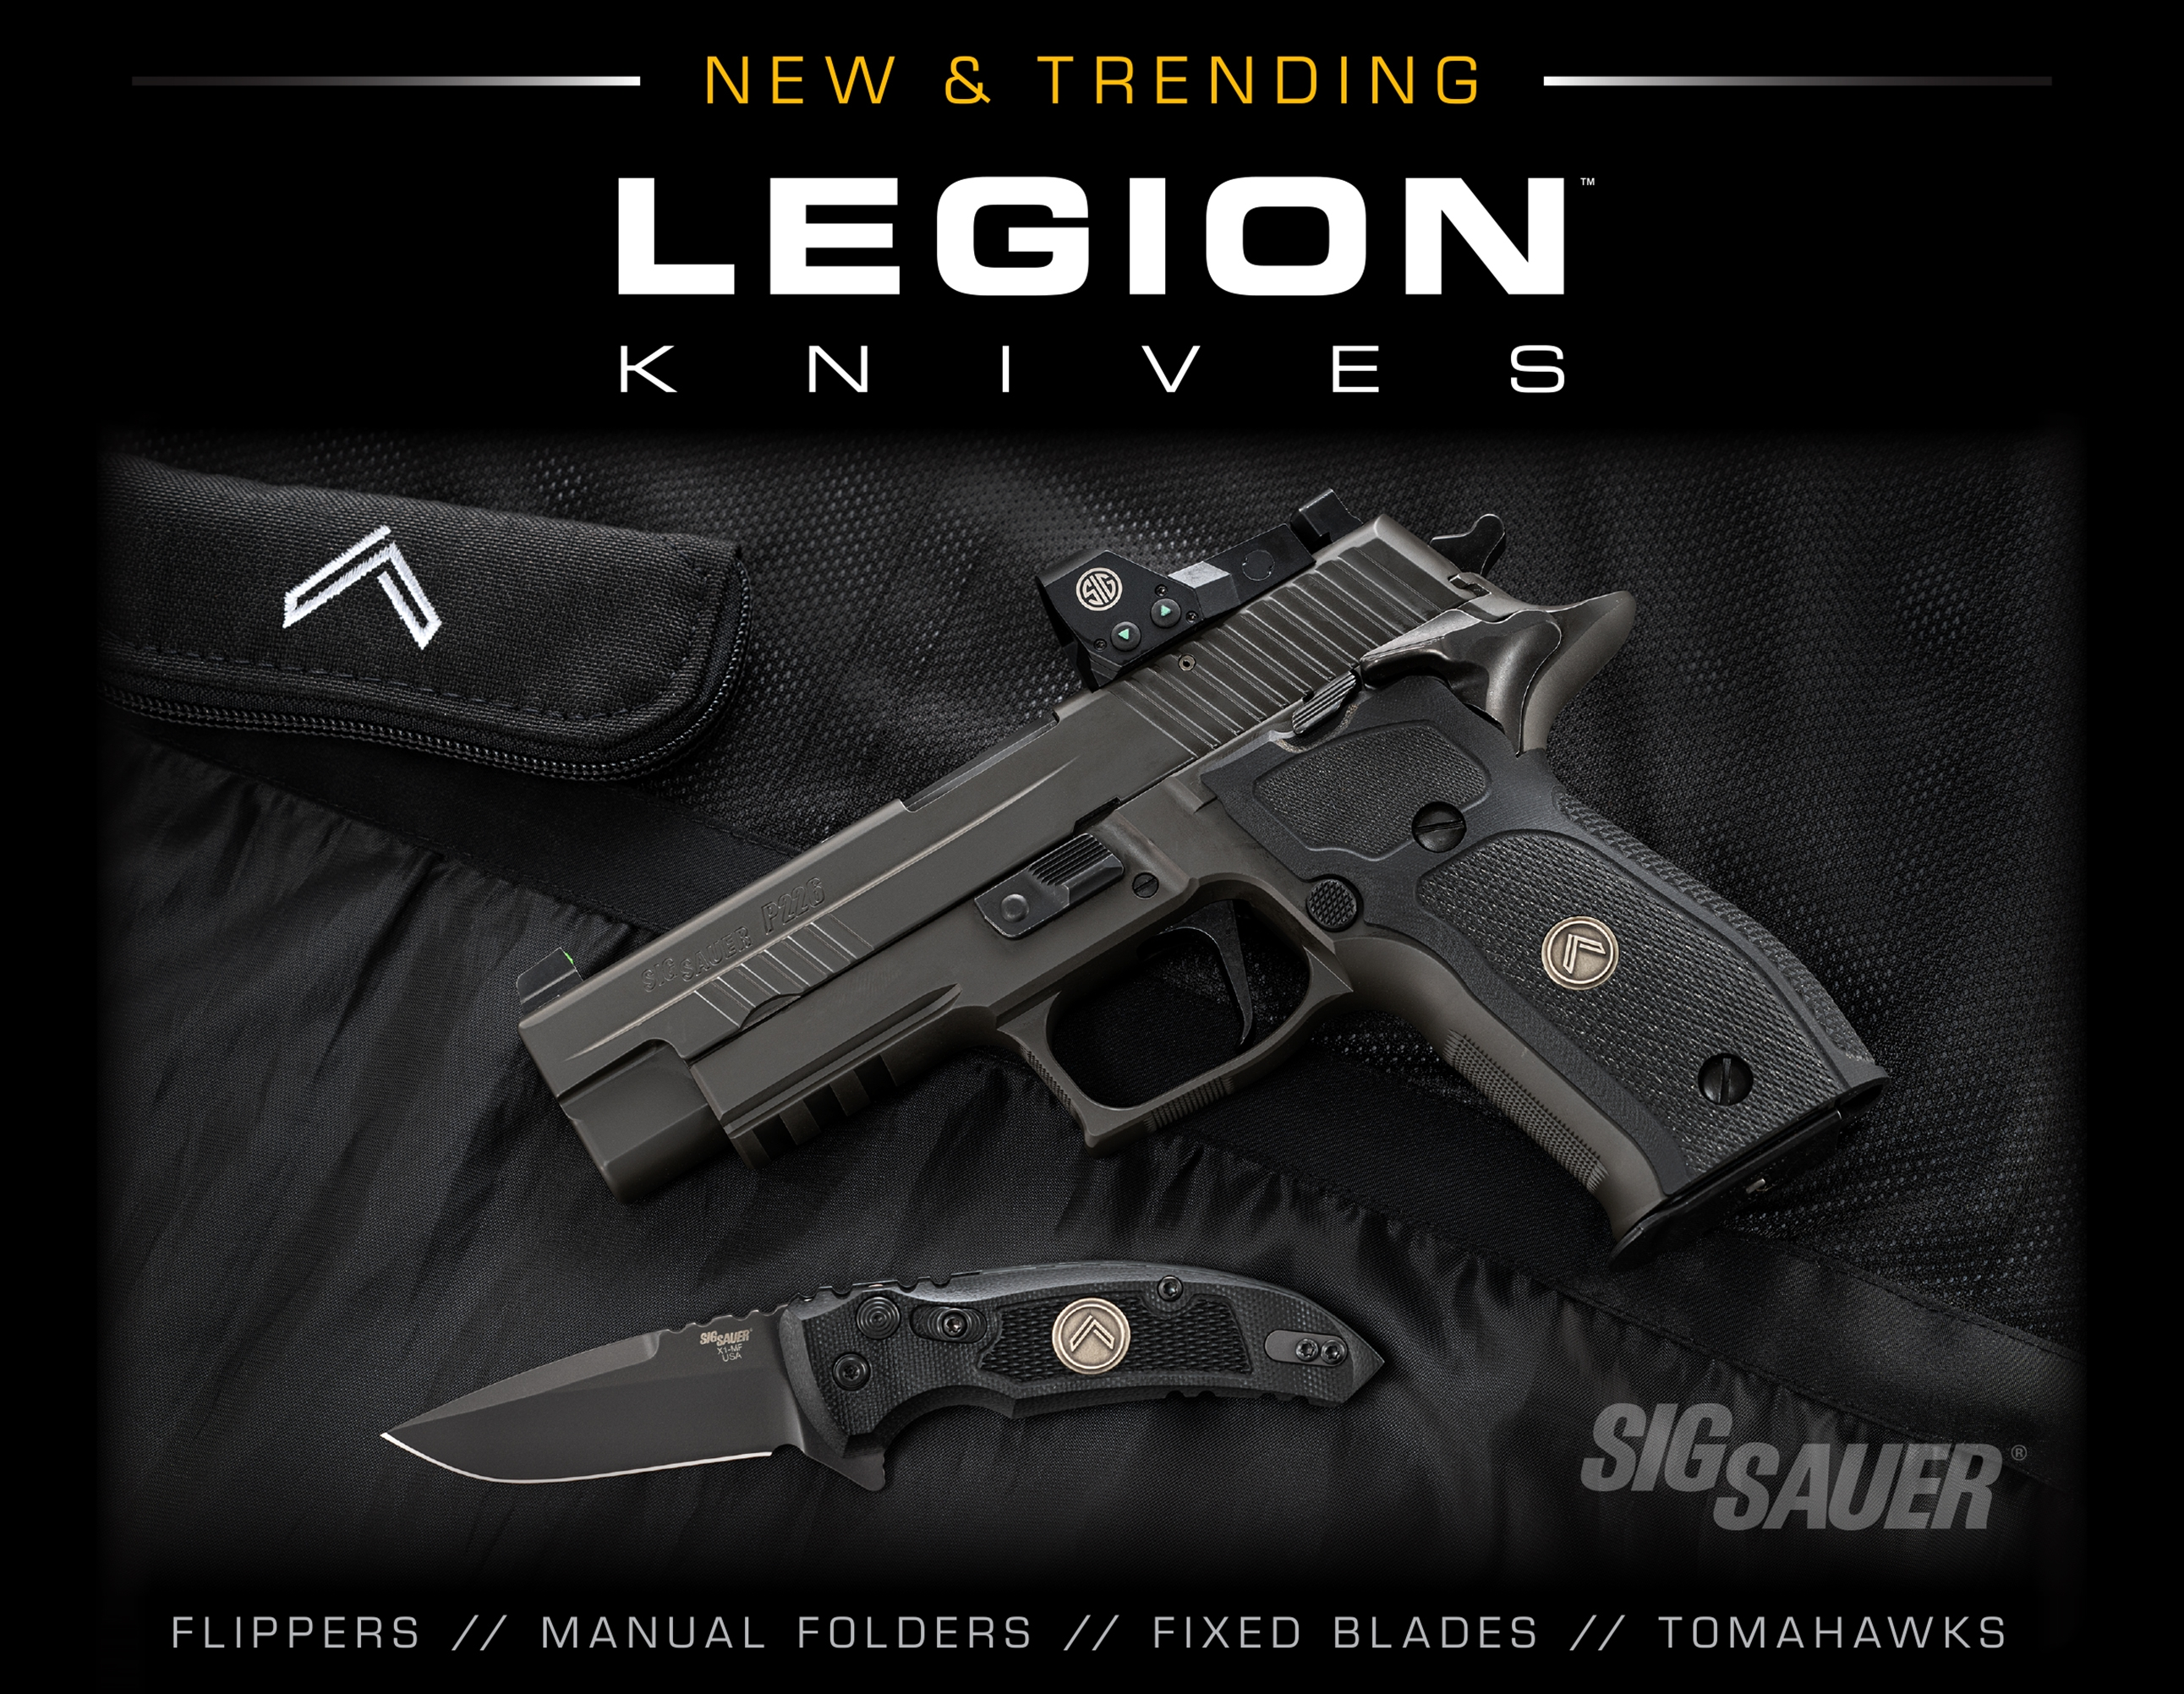 SIG SAUER LEGION Knives Display Image